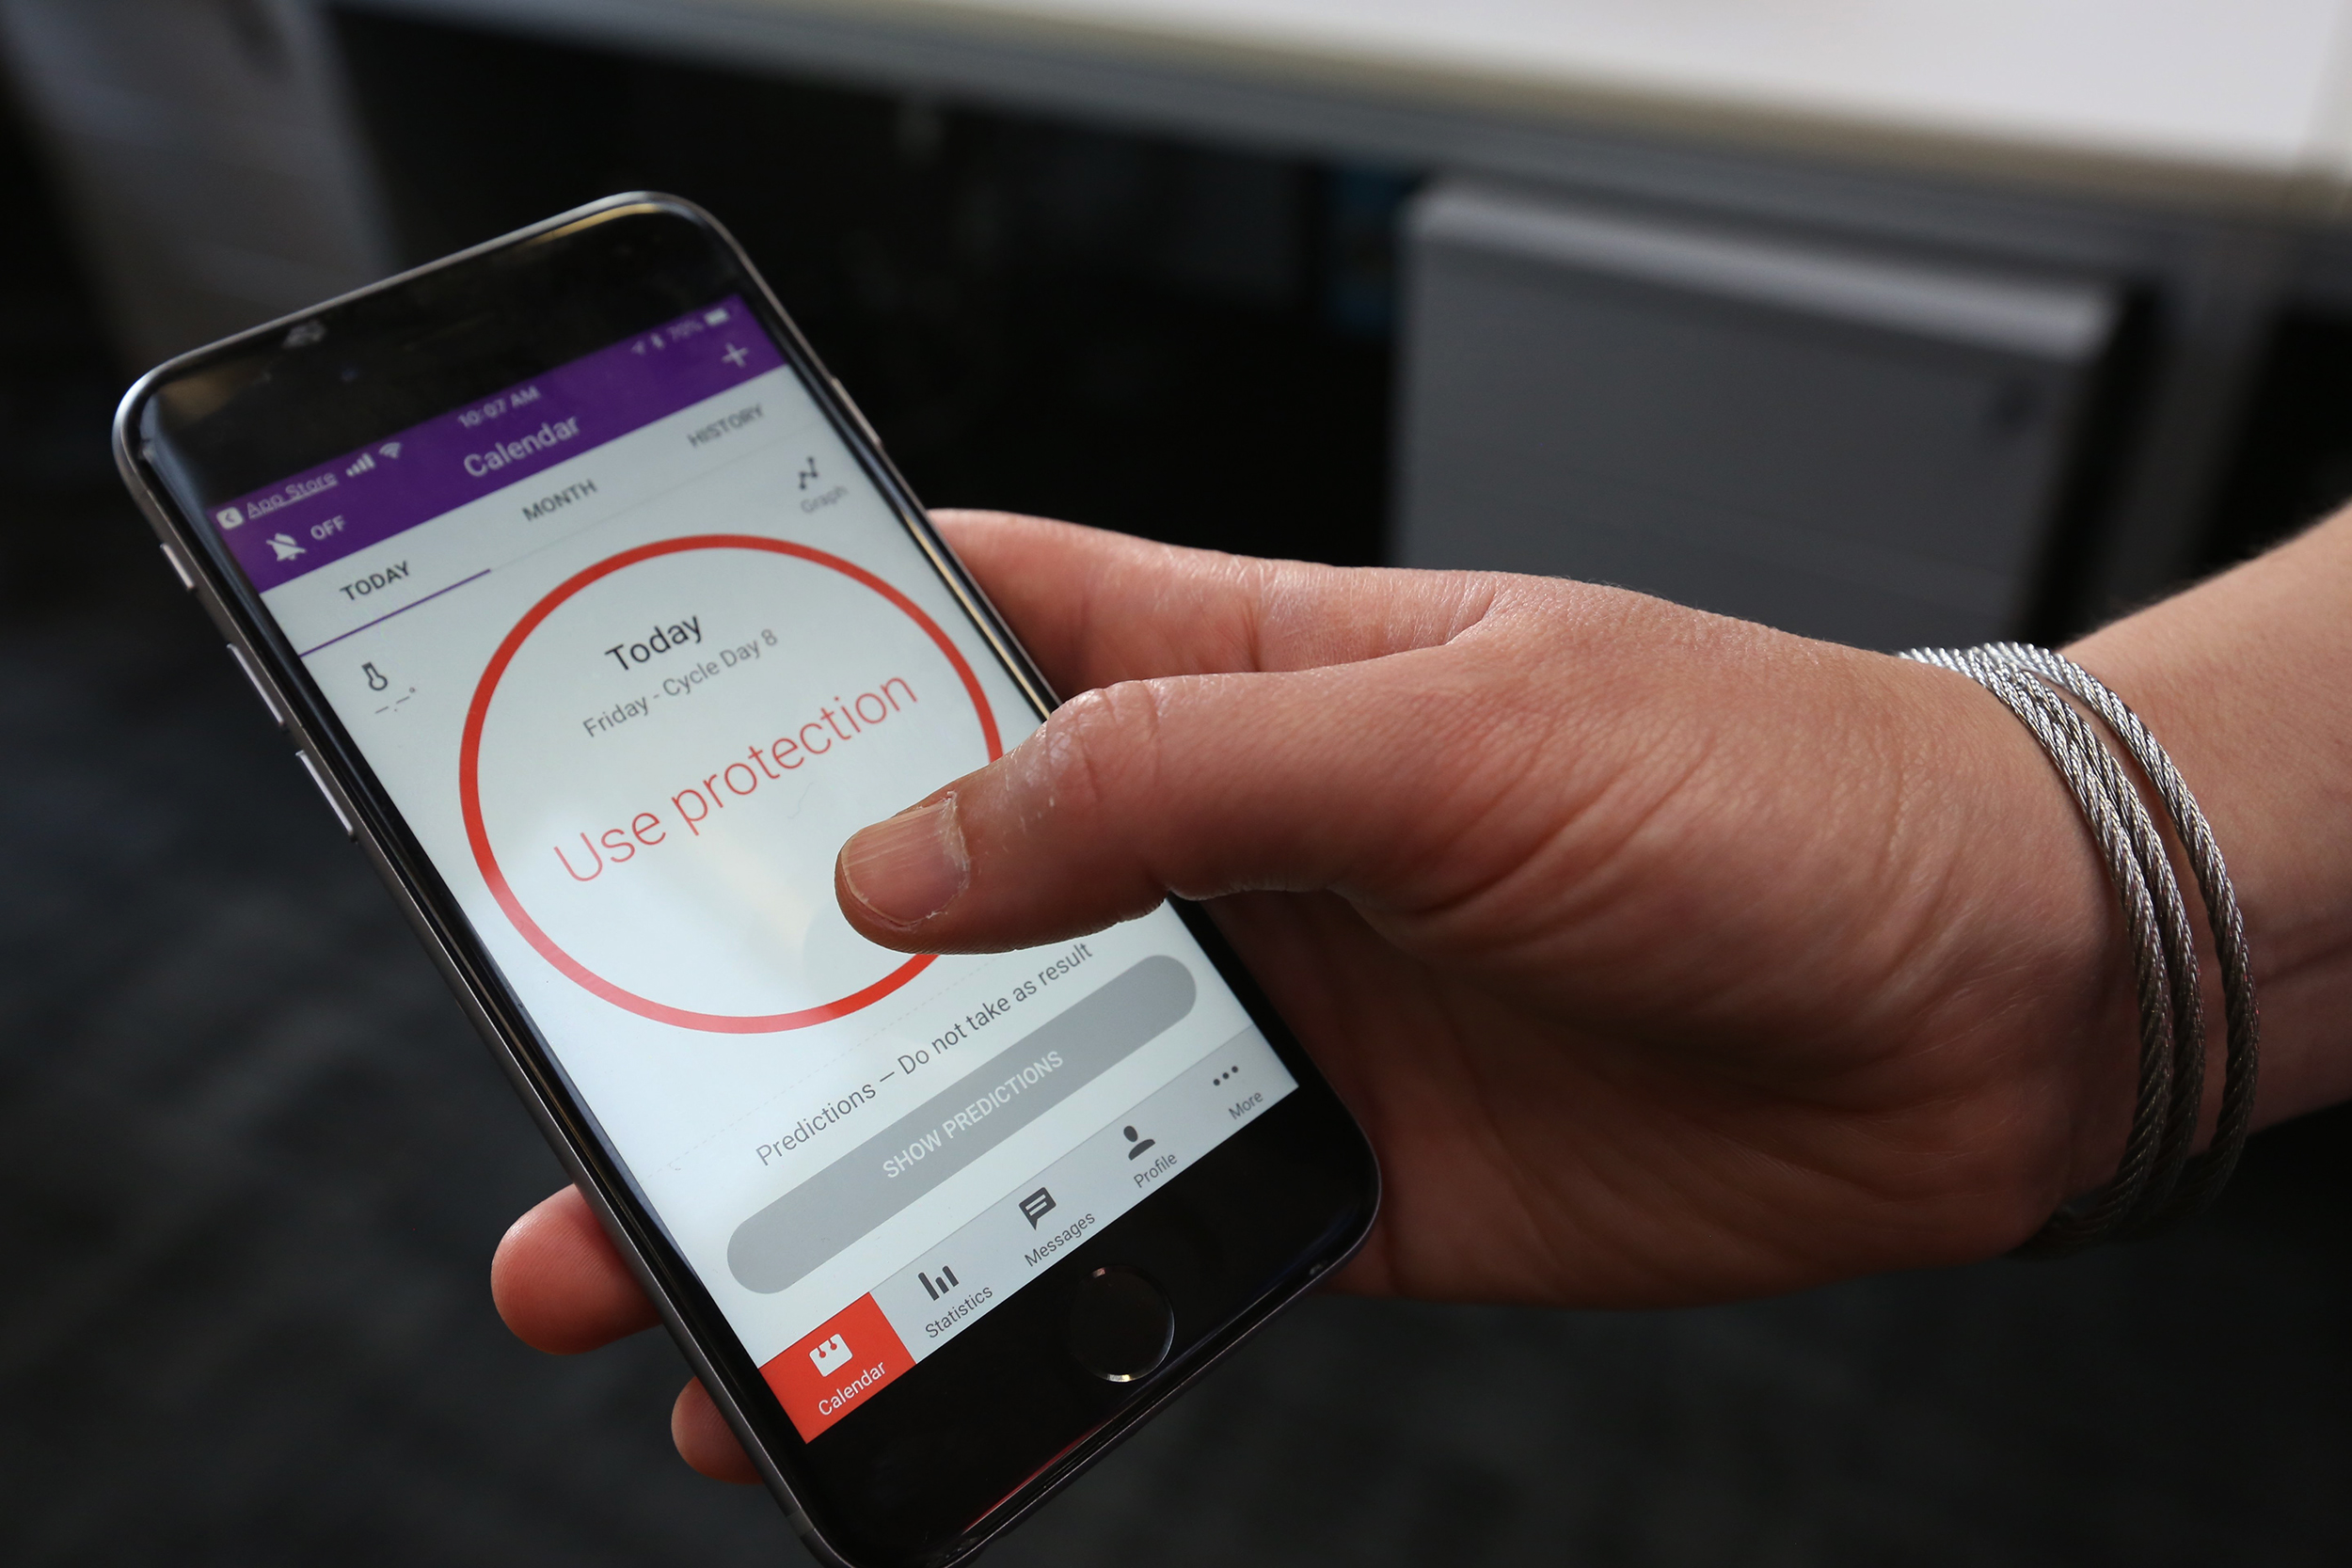 FDA approved a birth control app. Here's what OB-GYNs want you to know.